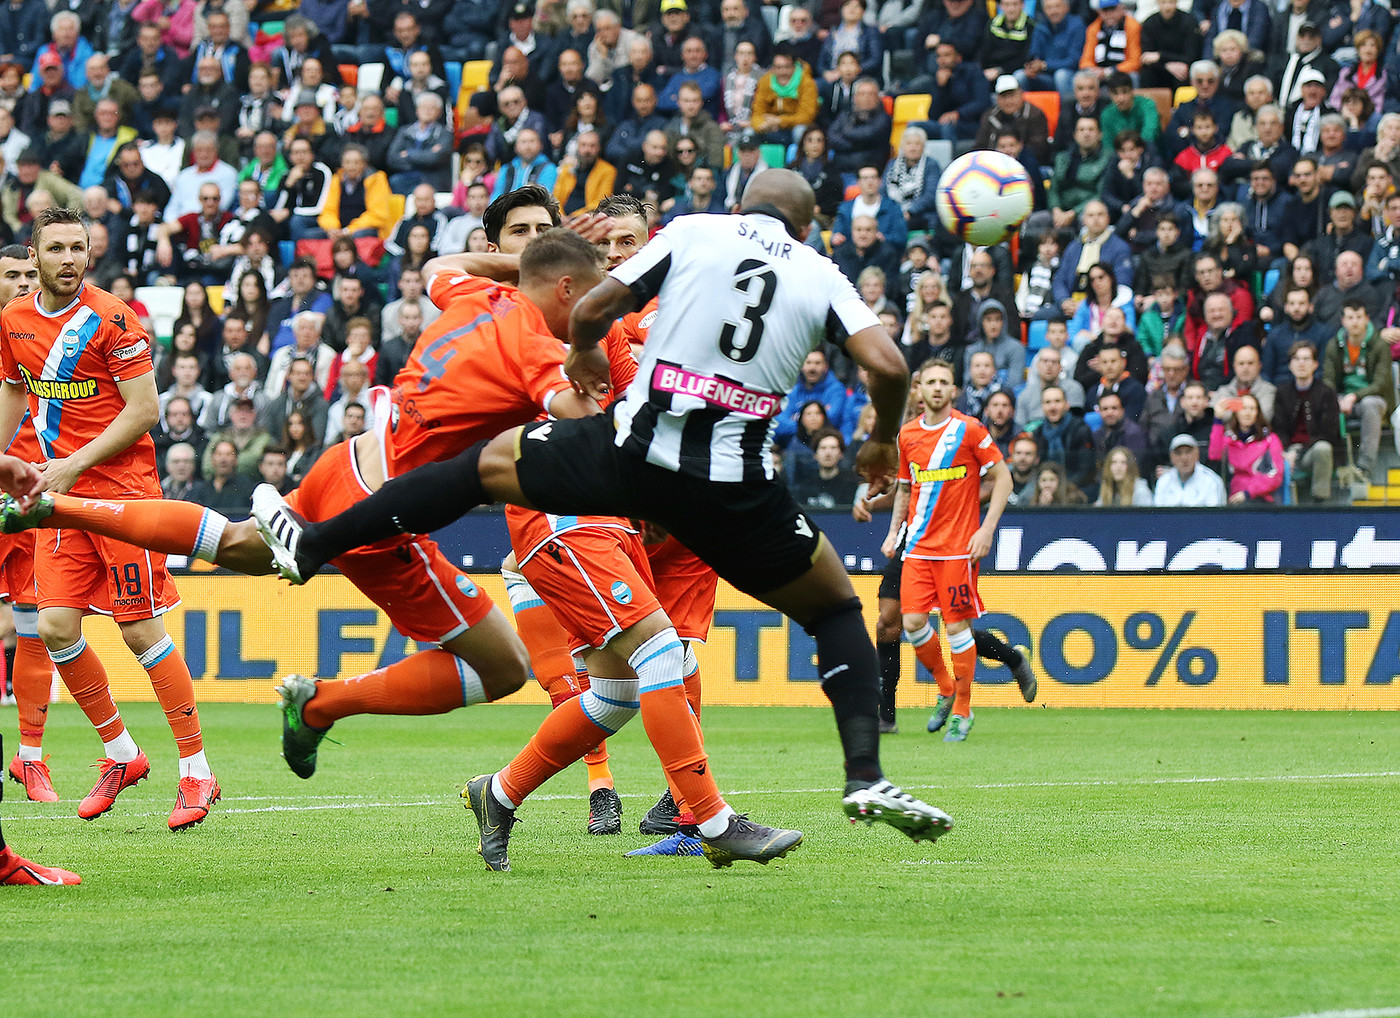 Serie A, Udinese-Spal 3-2   Il fotoracconto